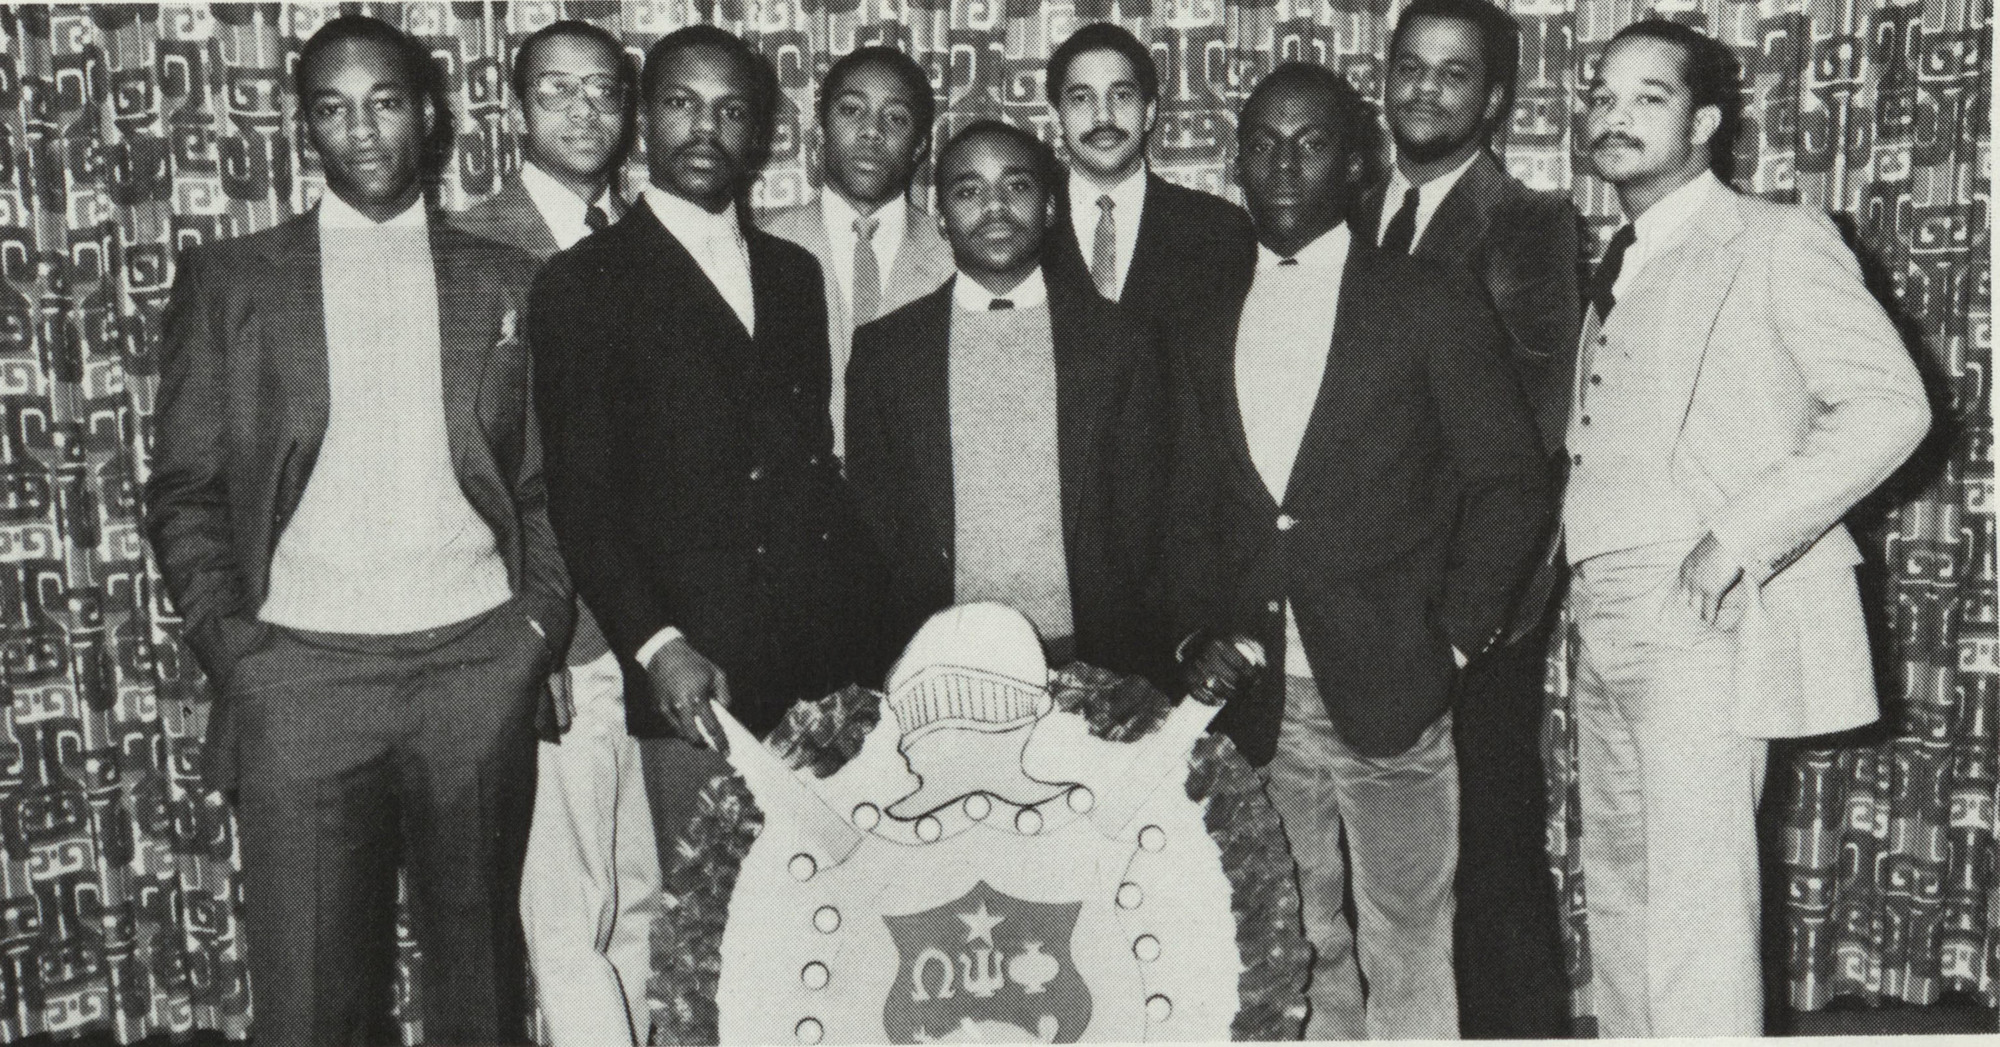 http://spec.lib.vt.edu/pickup/Omeka_upload/OmegaPsiPhi_1982.jpg